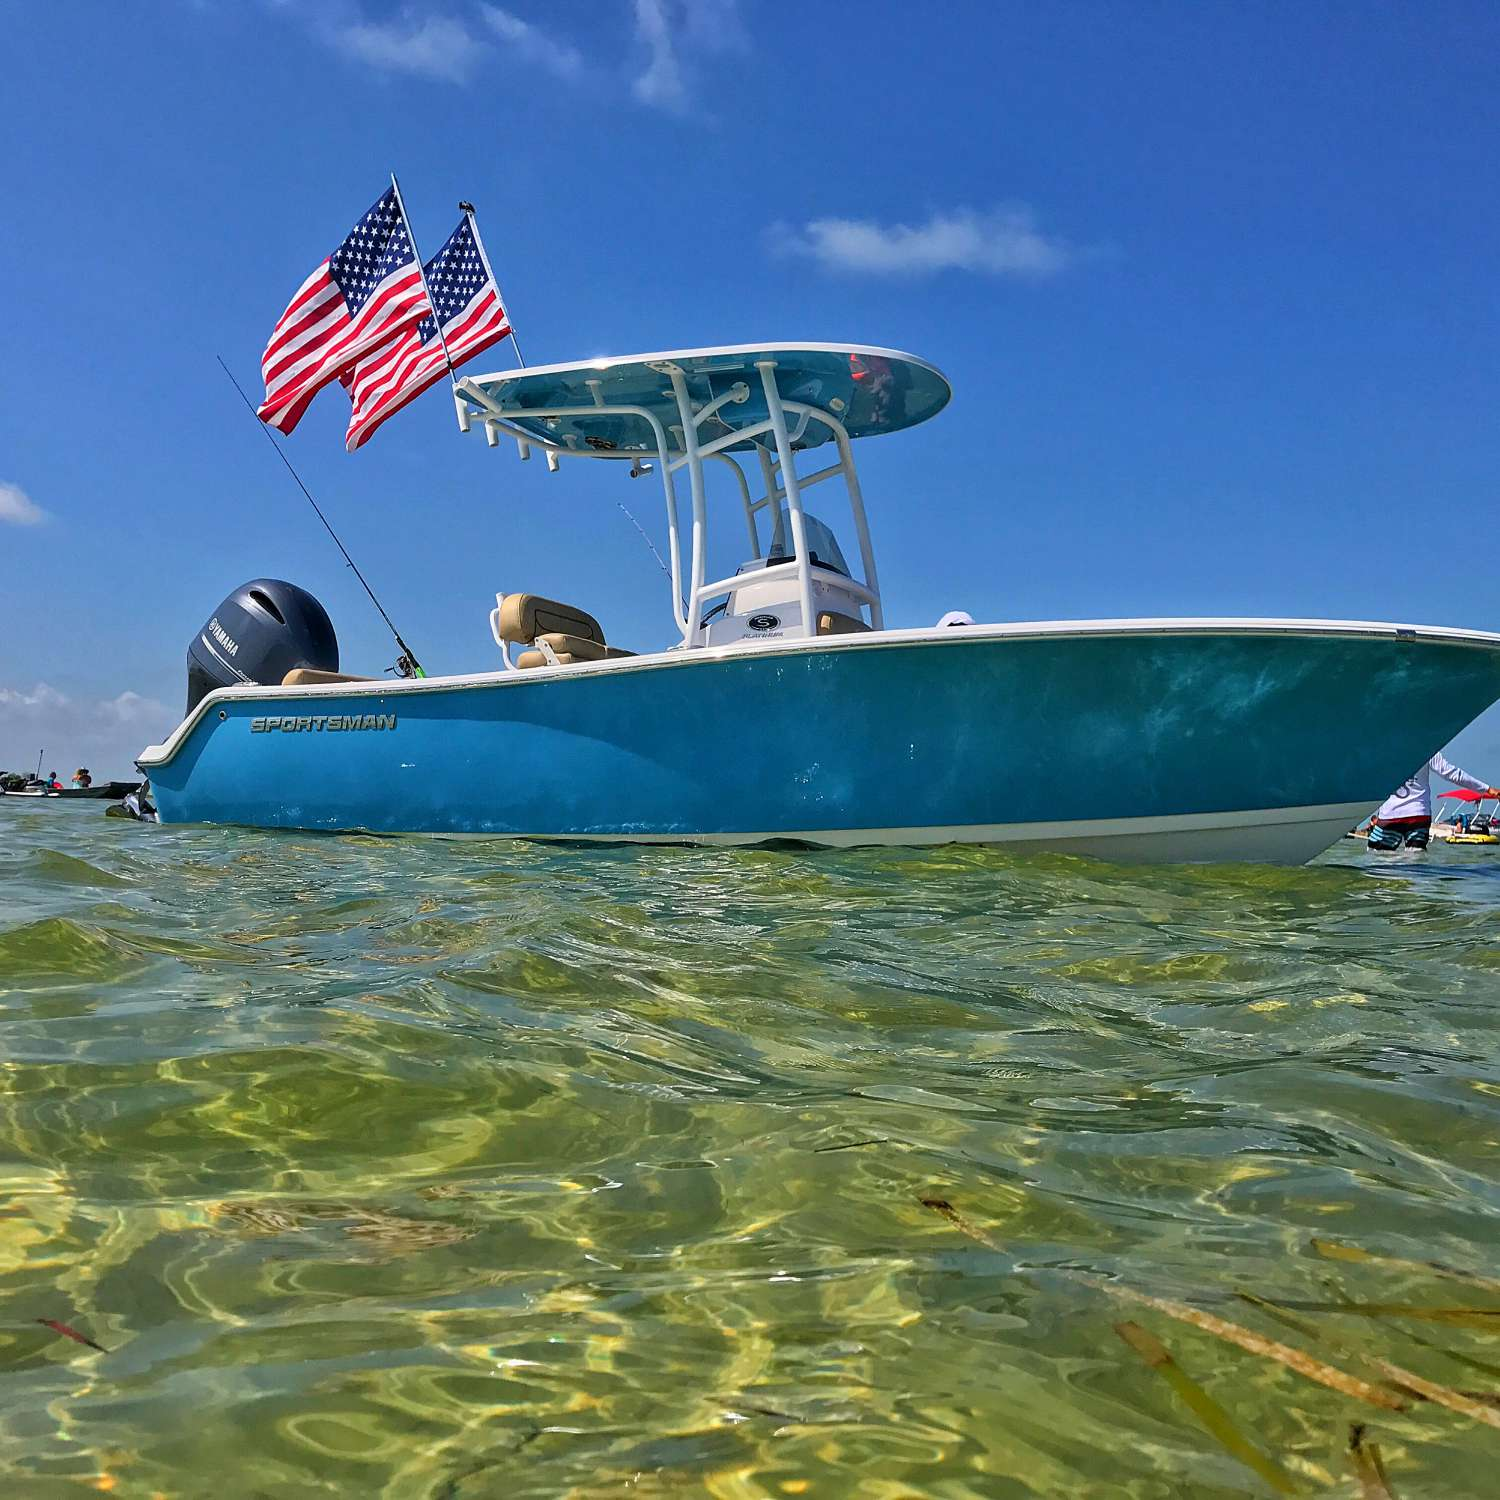 Title: The American Dream - On board their Sportsman Heritage 211 Center Console - Location: Spring Hill, Florida. Participating in the Photo Contest #SportsmanAugust2017